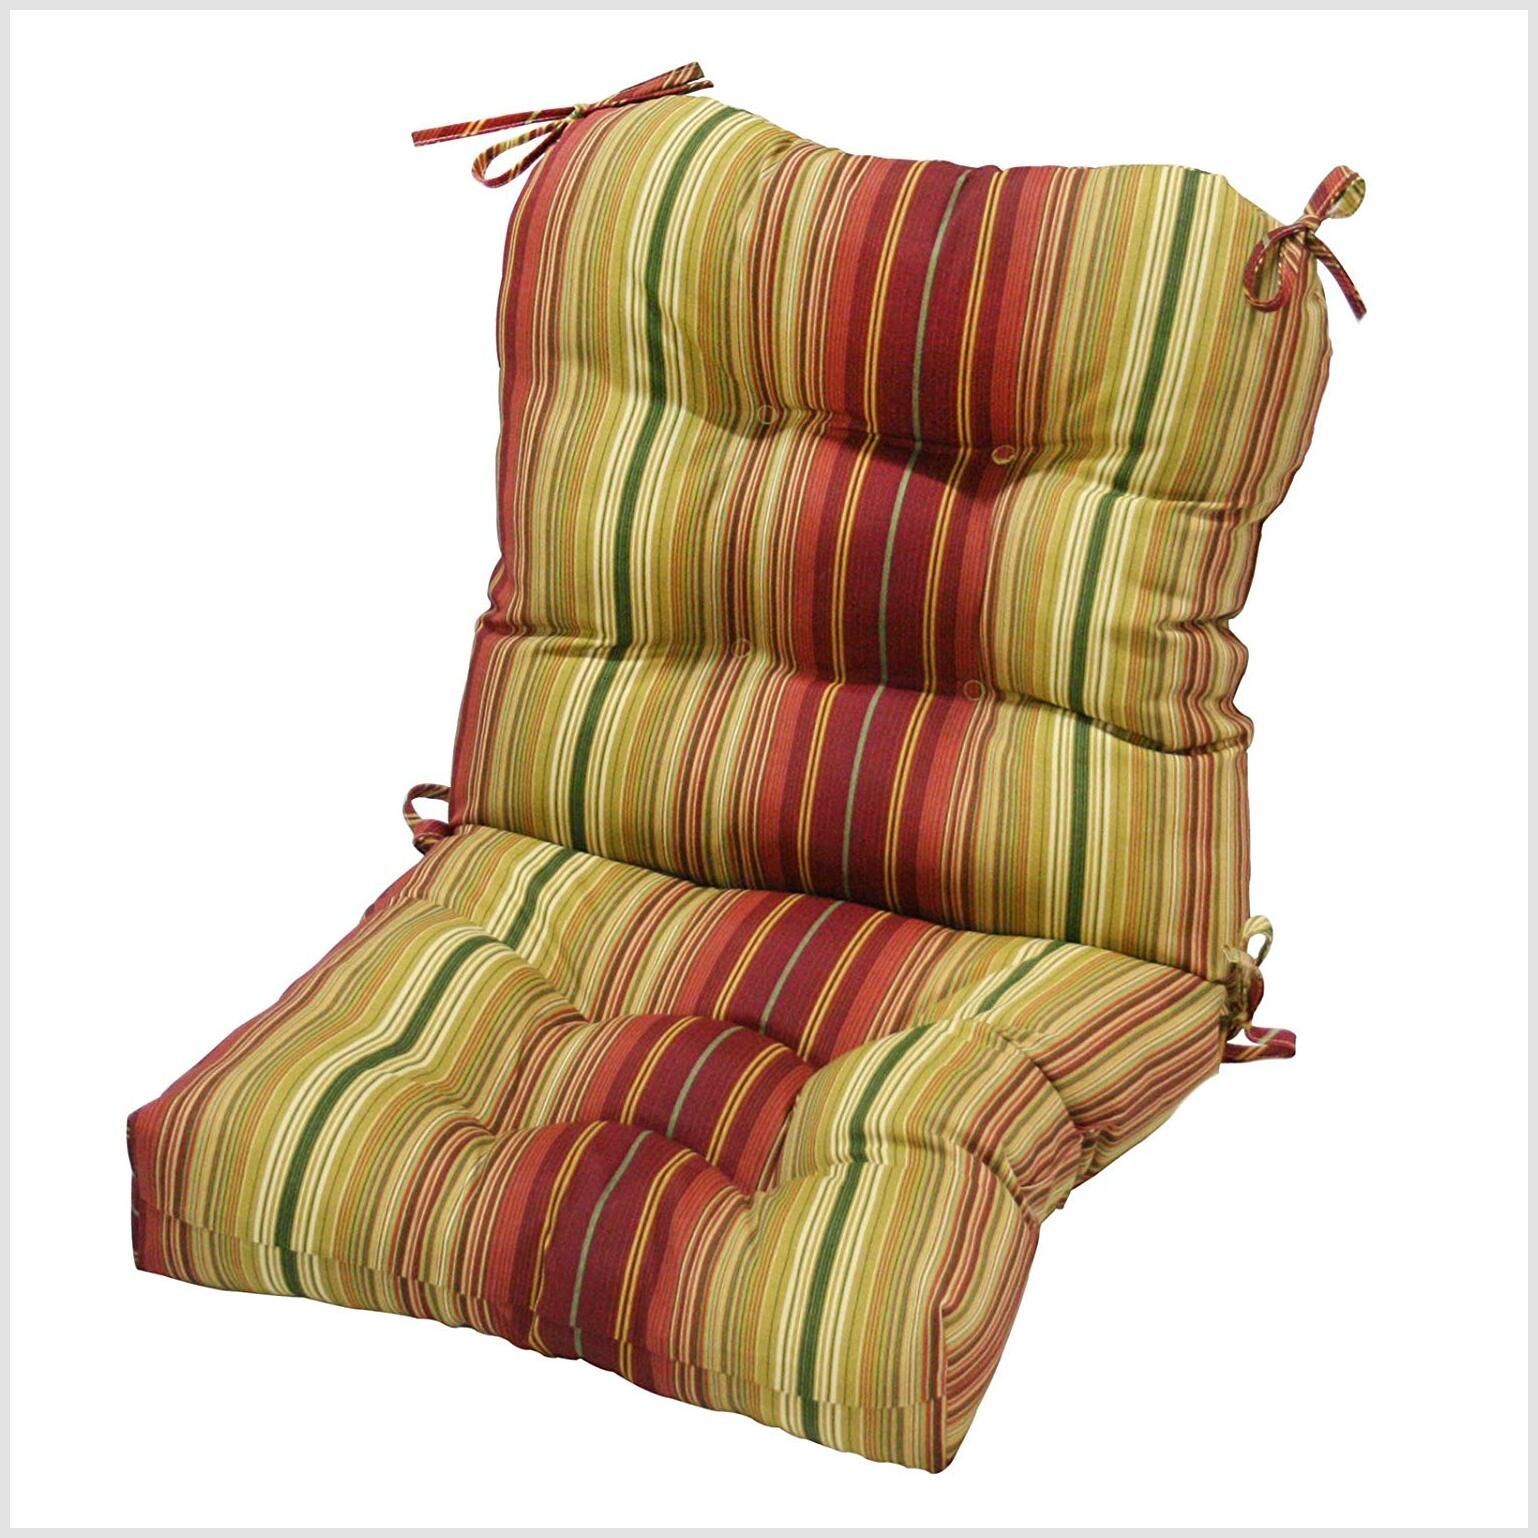 110 Reference Of Outdoor Chair Cushions Diy In 2020 Outdoor Chair Cushions Outdoor Chair Cushions Diy Diy Chair Cushions